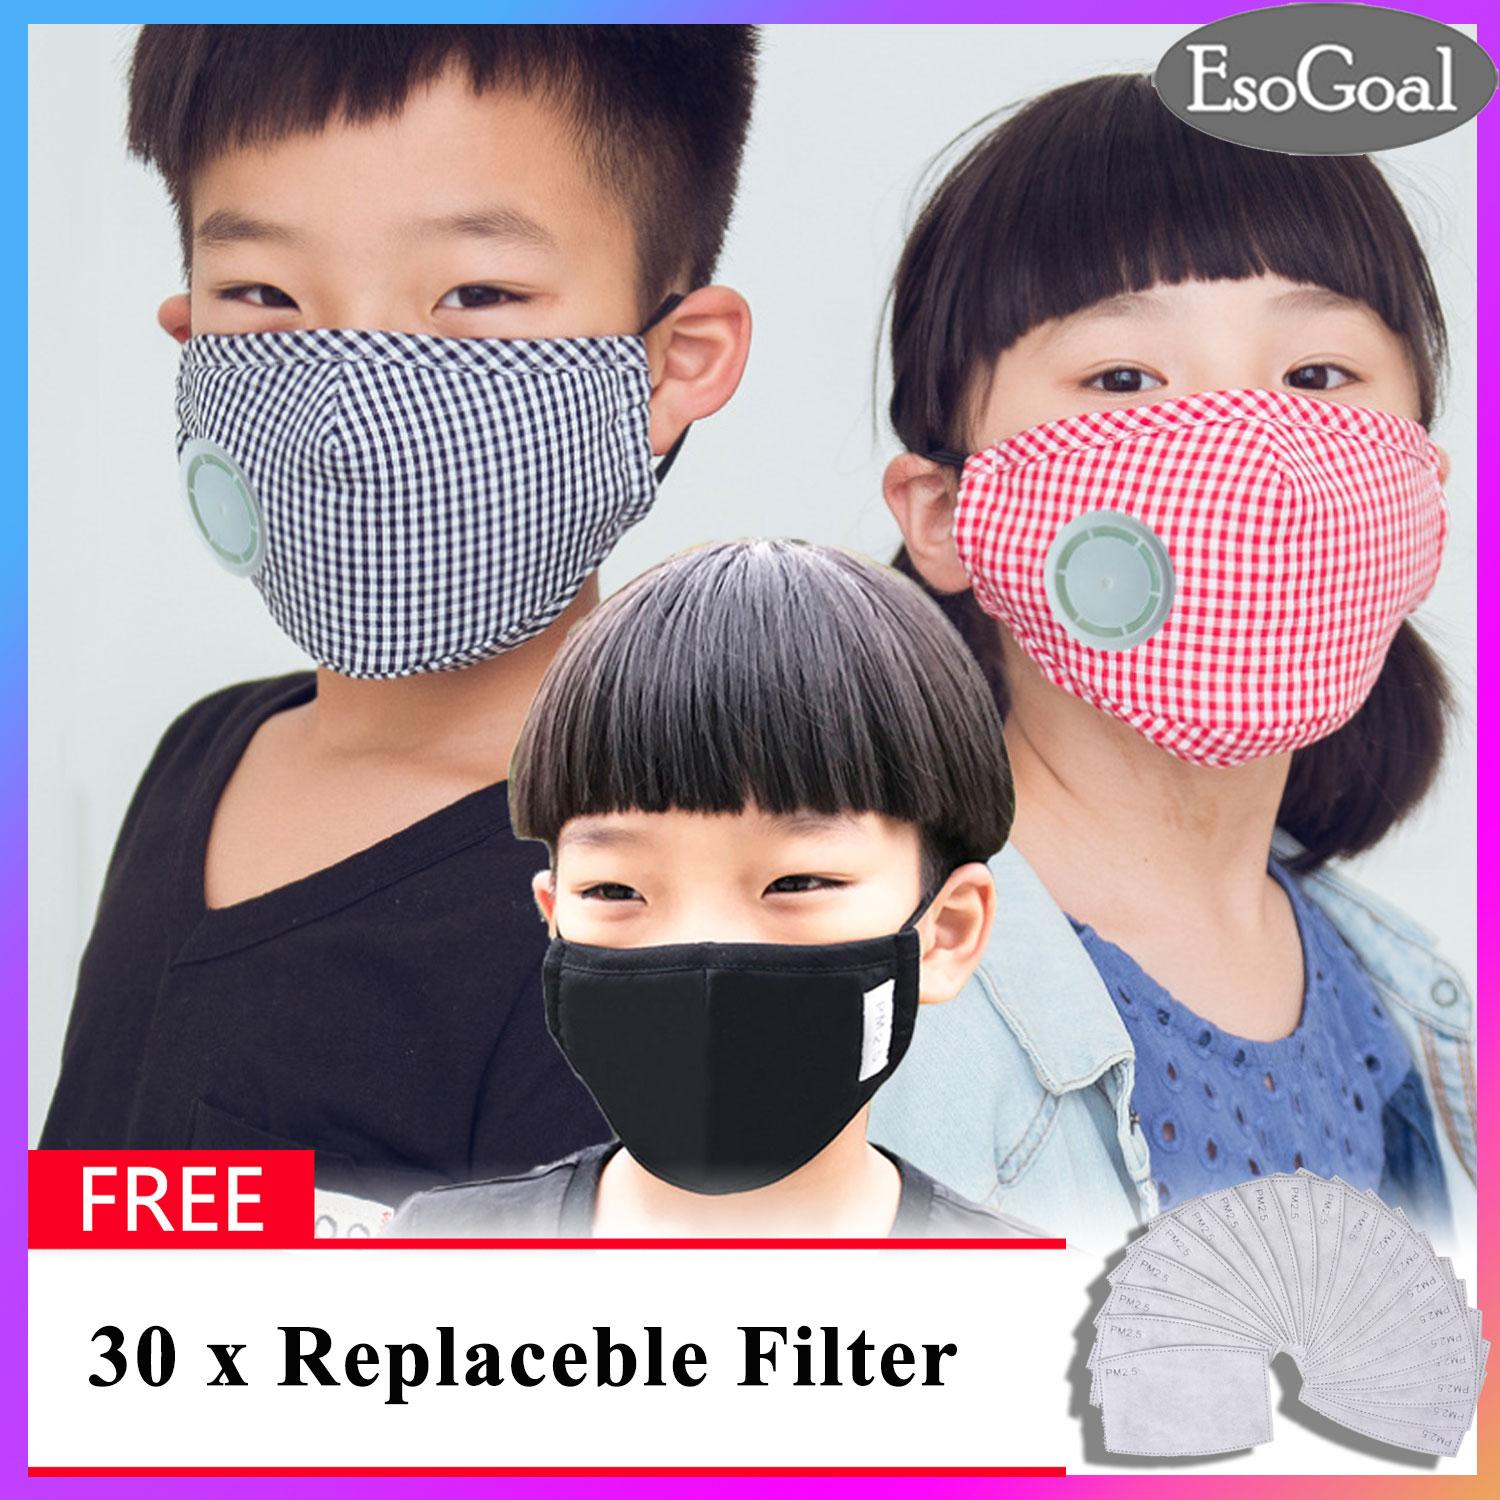 Esogoal 3 Pack Mouth Face Mask Anti-Fog Anti Pm 2.5 Respirator Anti Dust Haze Cycling Pure Cotton Mask Respirator With 30 Replaceable Activated Carbon Filters And Exhaust Valve For Kids By Esogoal.